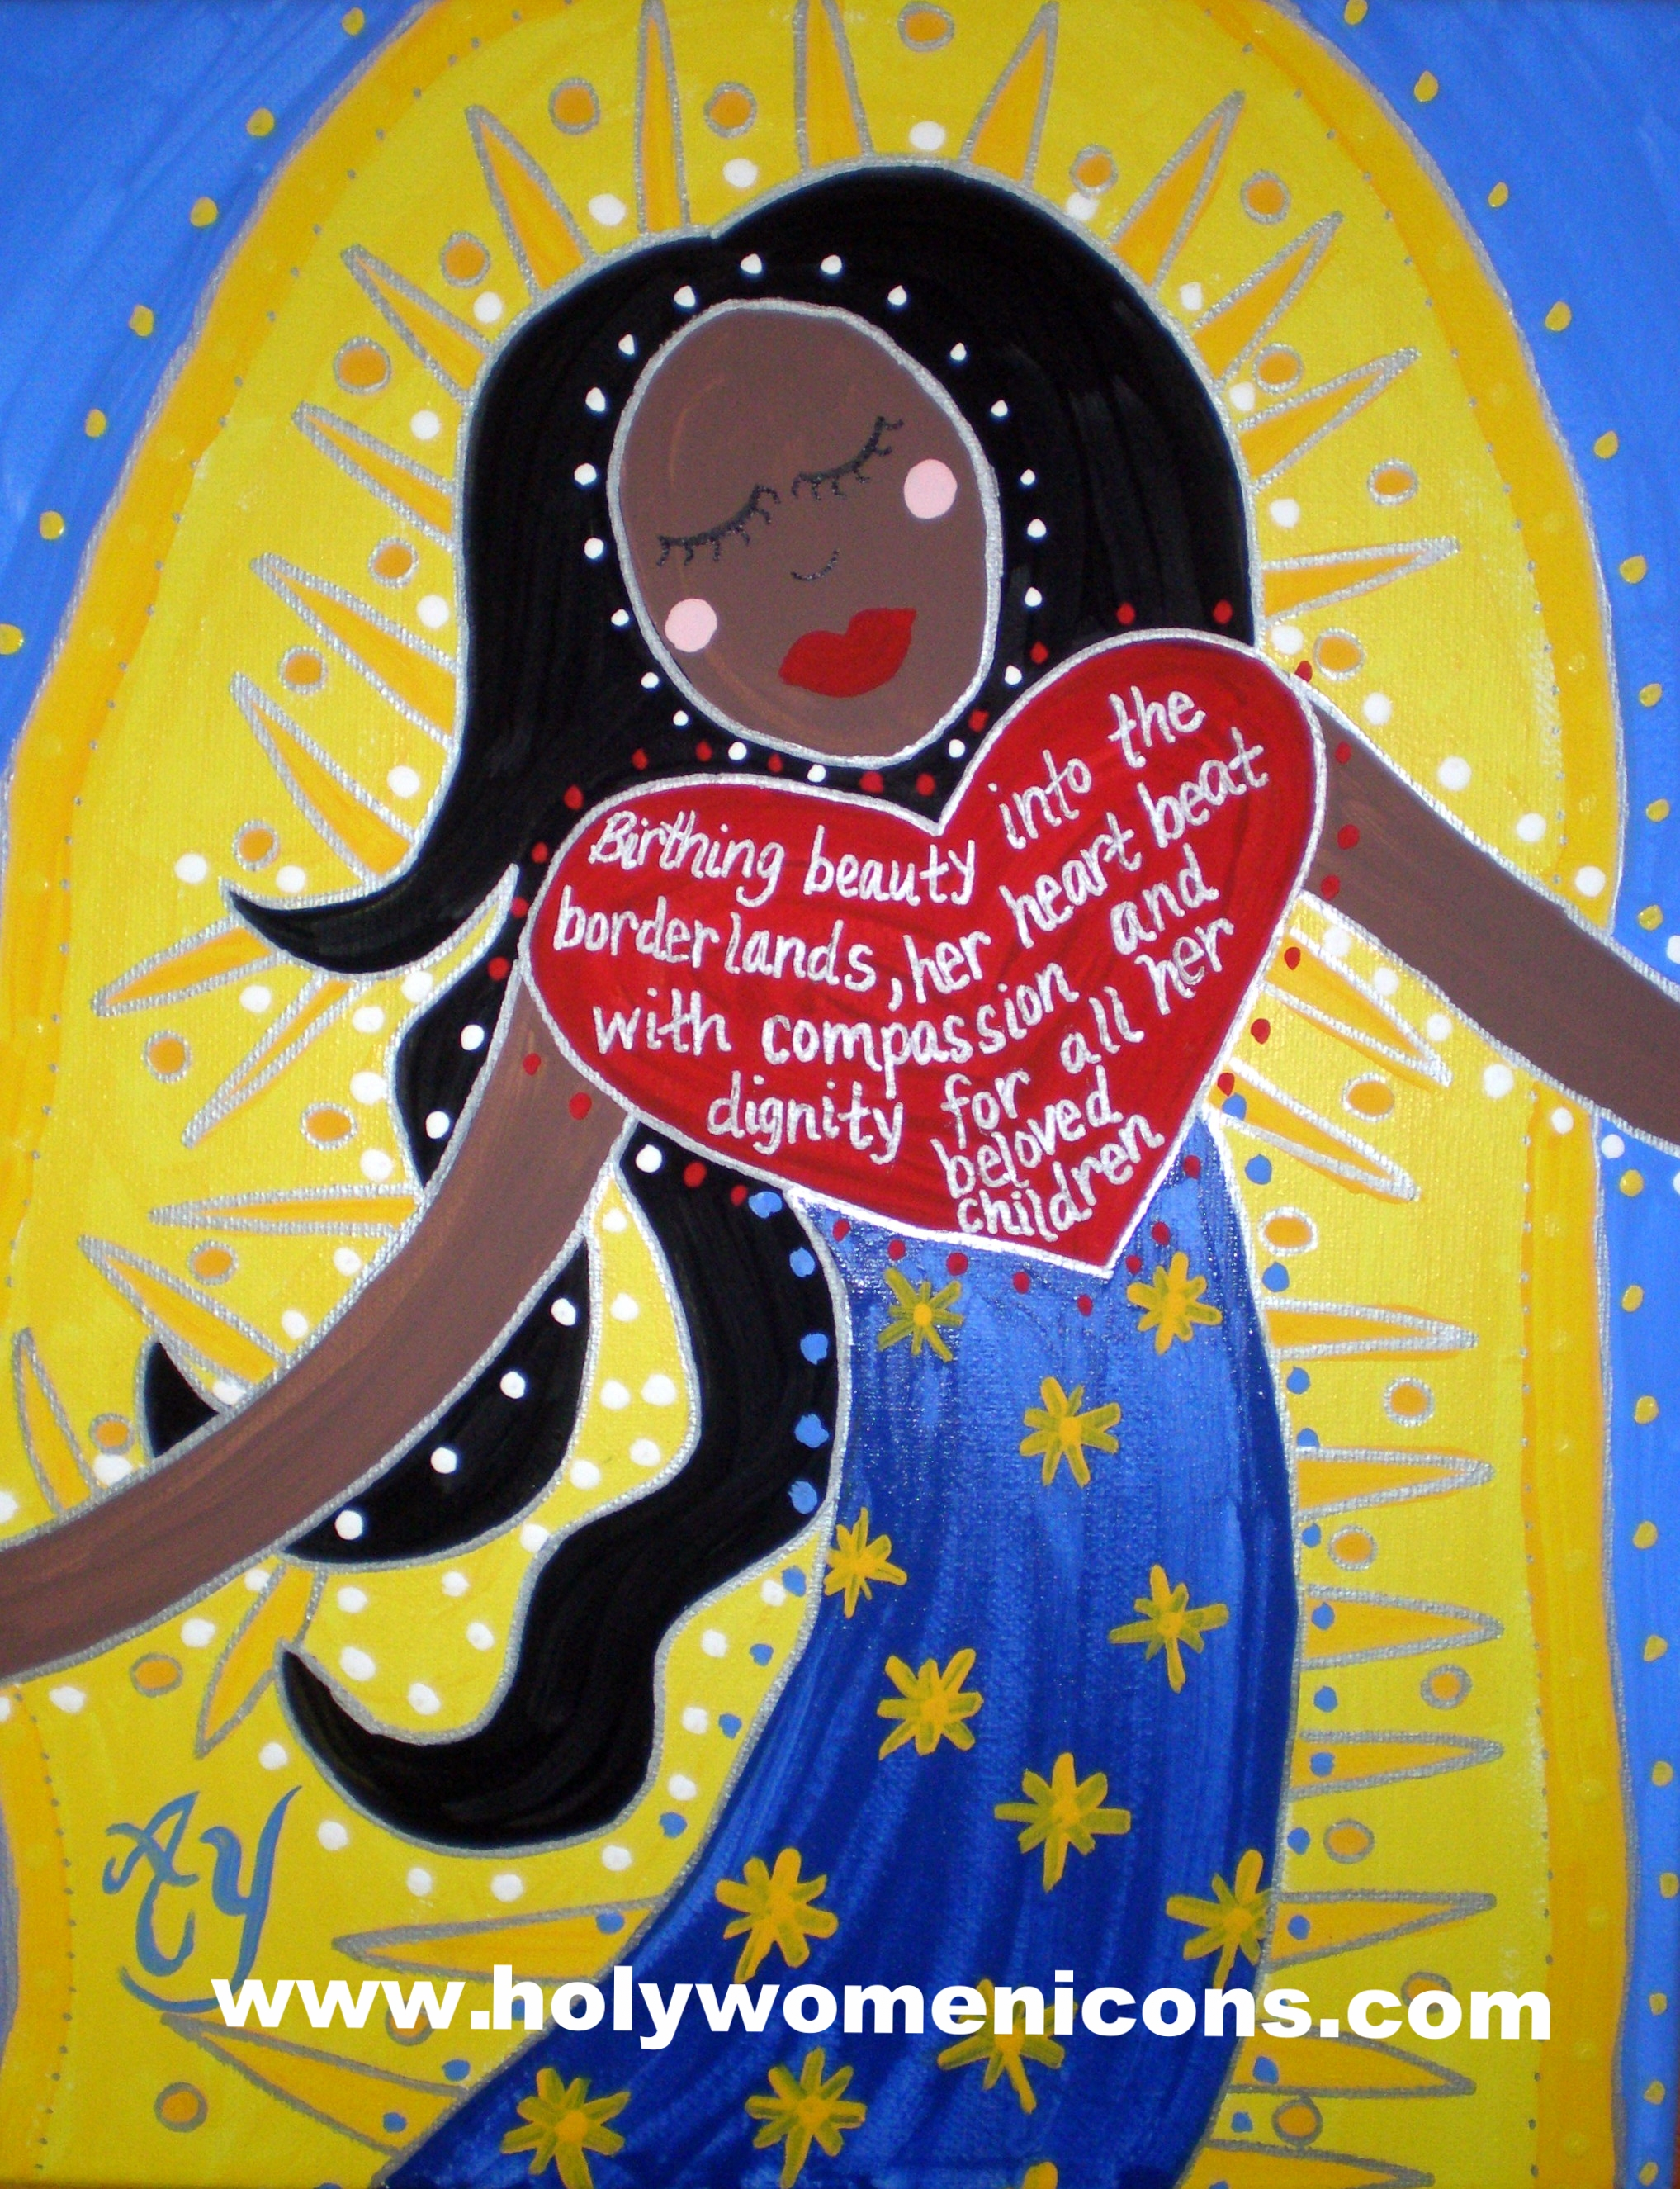 Our Lady of Guadalupe (commission)